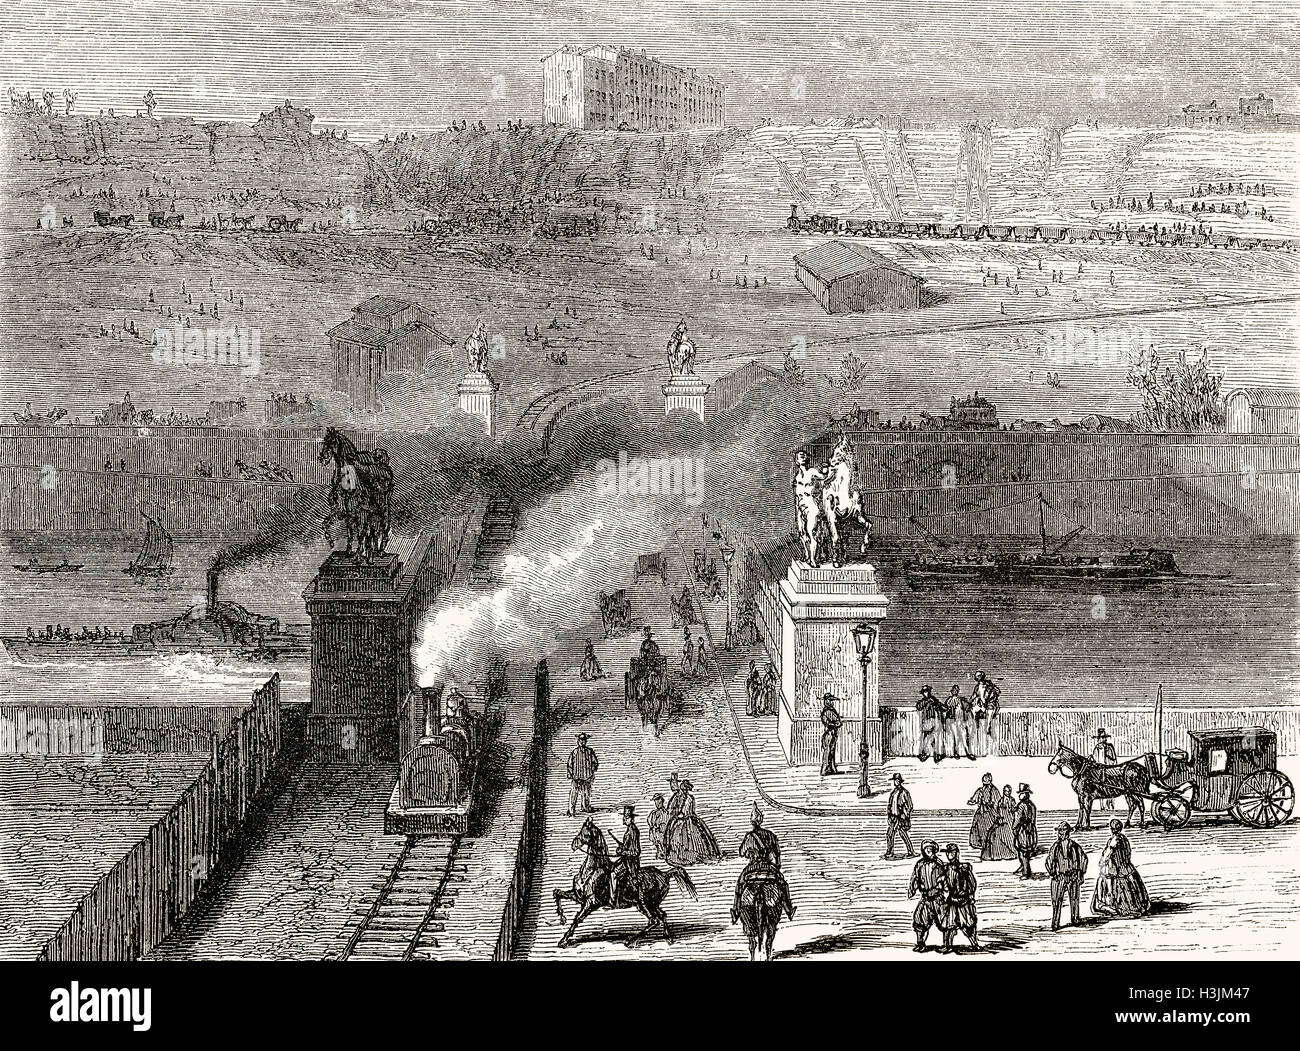 Clearing away the Trocadero hill for building the Champ de Mars, International Exposition of 1867, Paris, France, - Stock Image